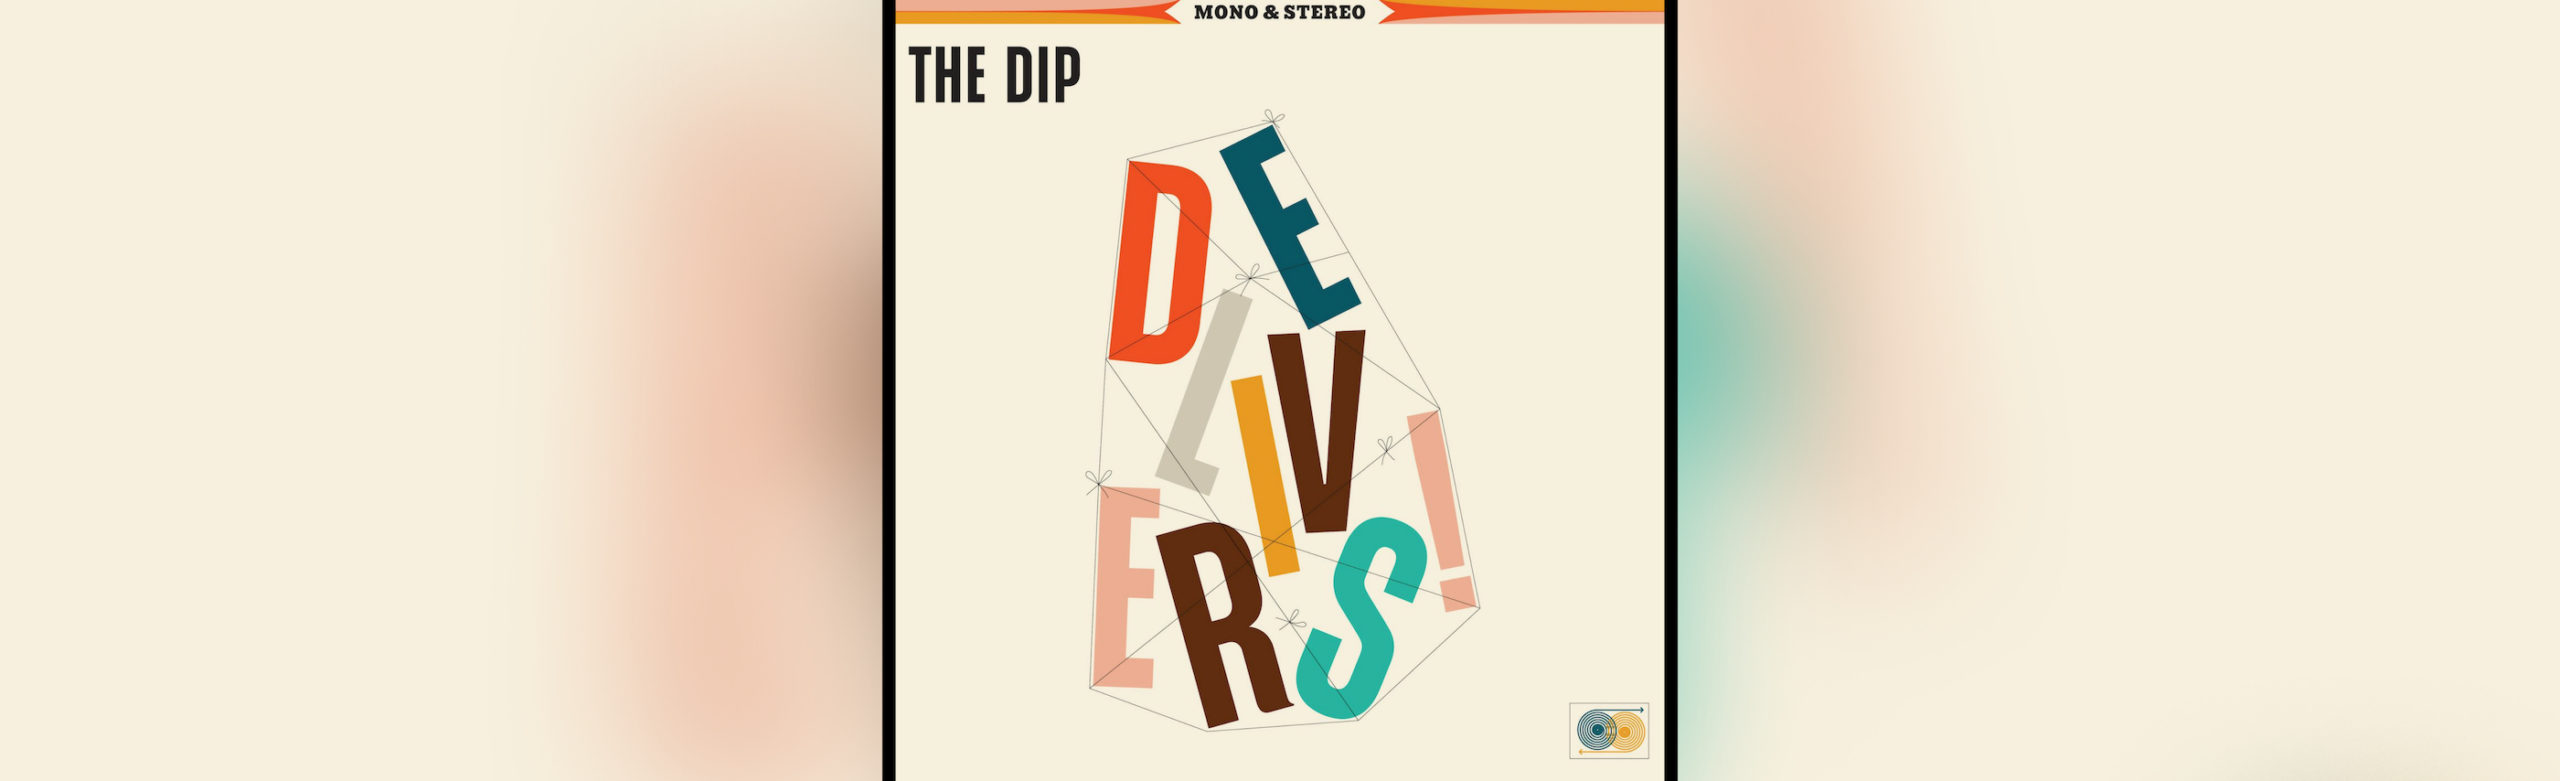 The Dip Delivers New Album Image